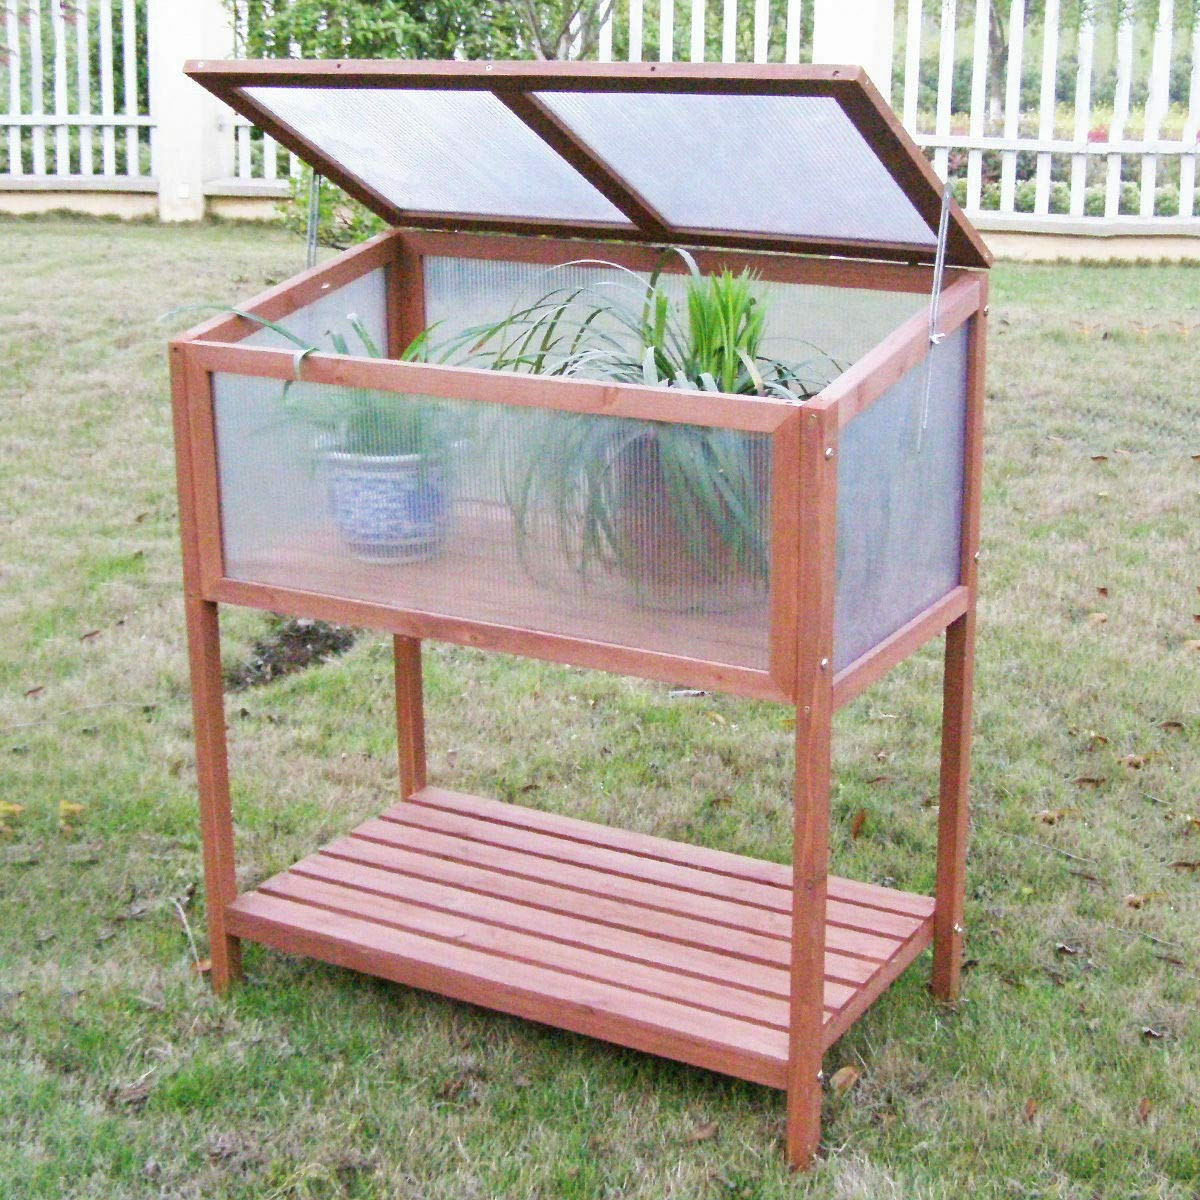 Greenhouse Raised Flower Planter Protection Garden Yard Portable Wooden Cold Frame